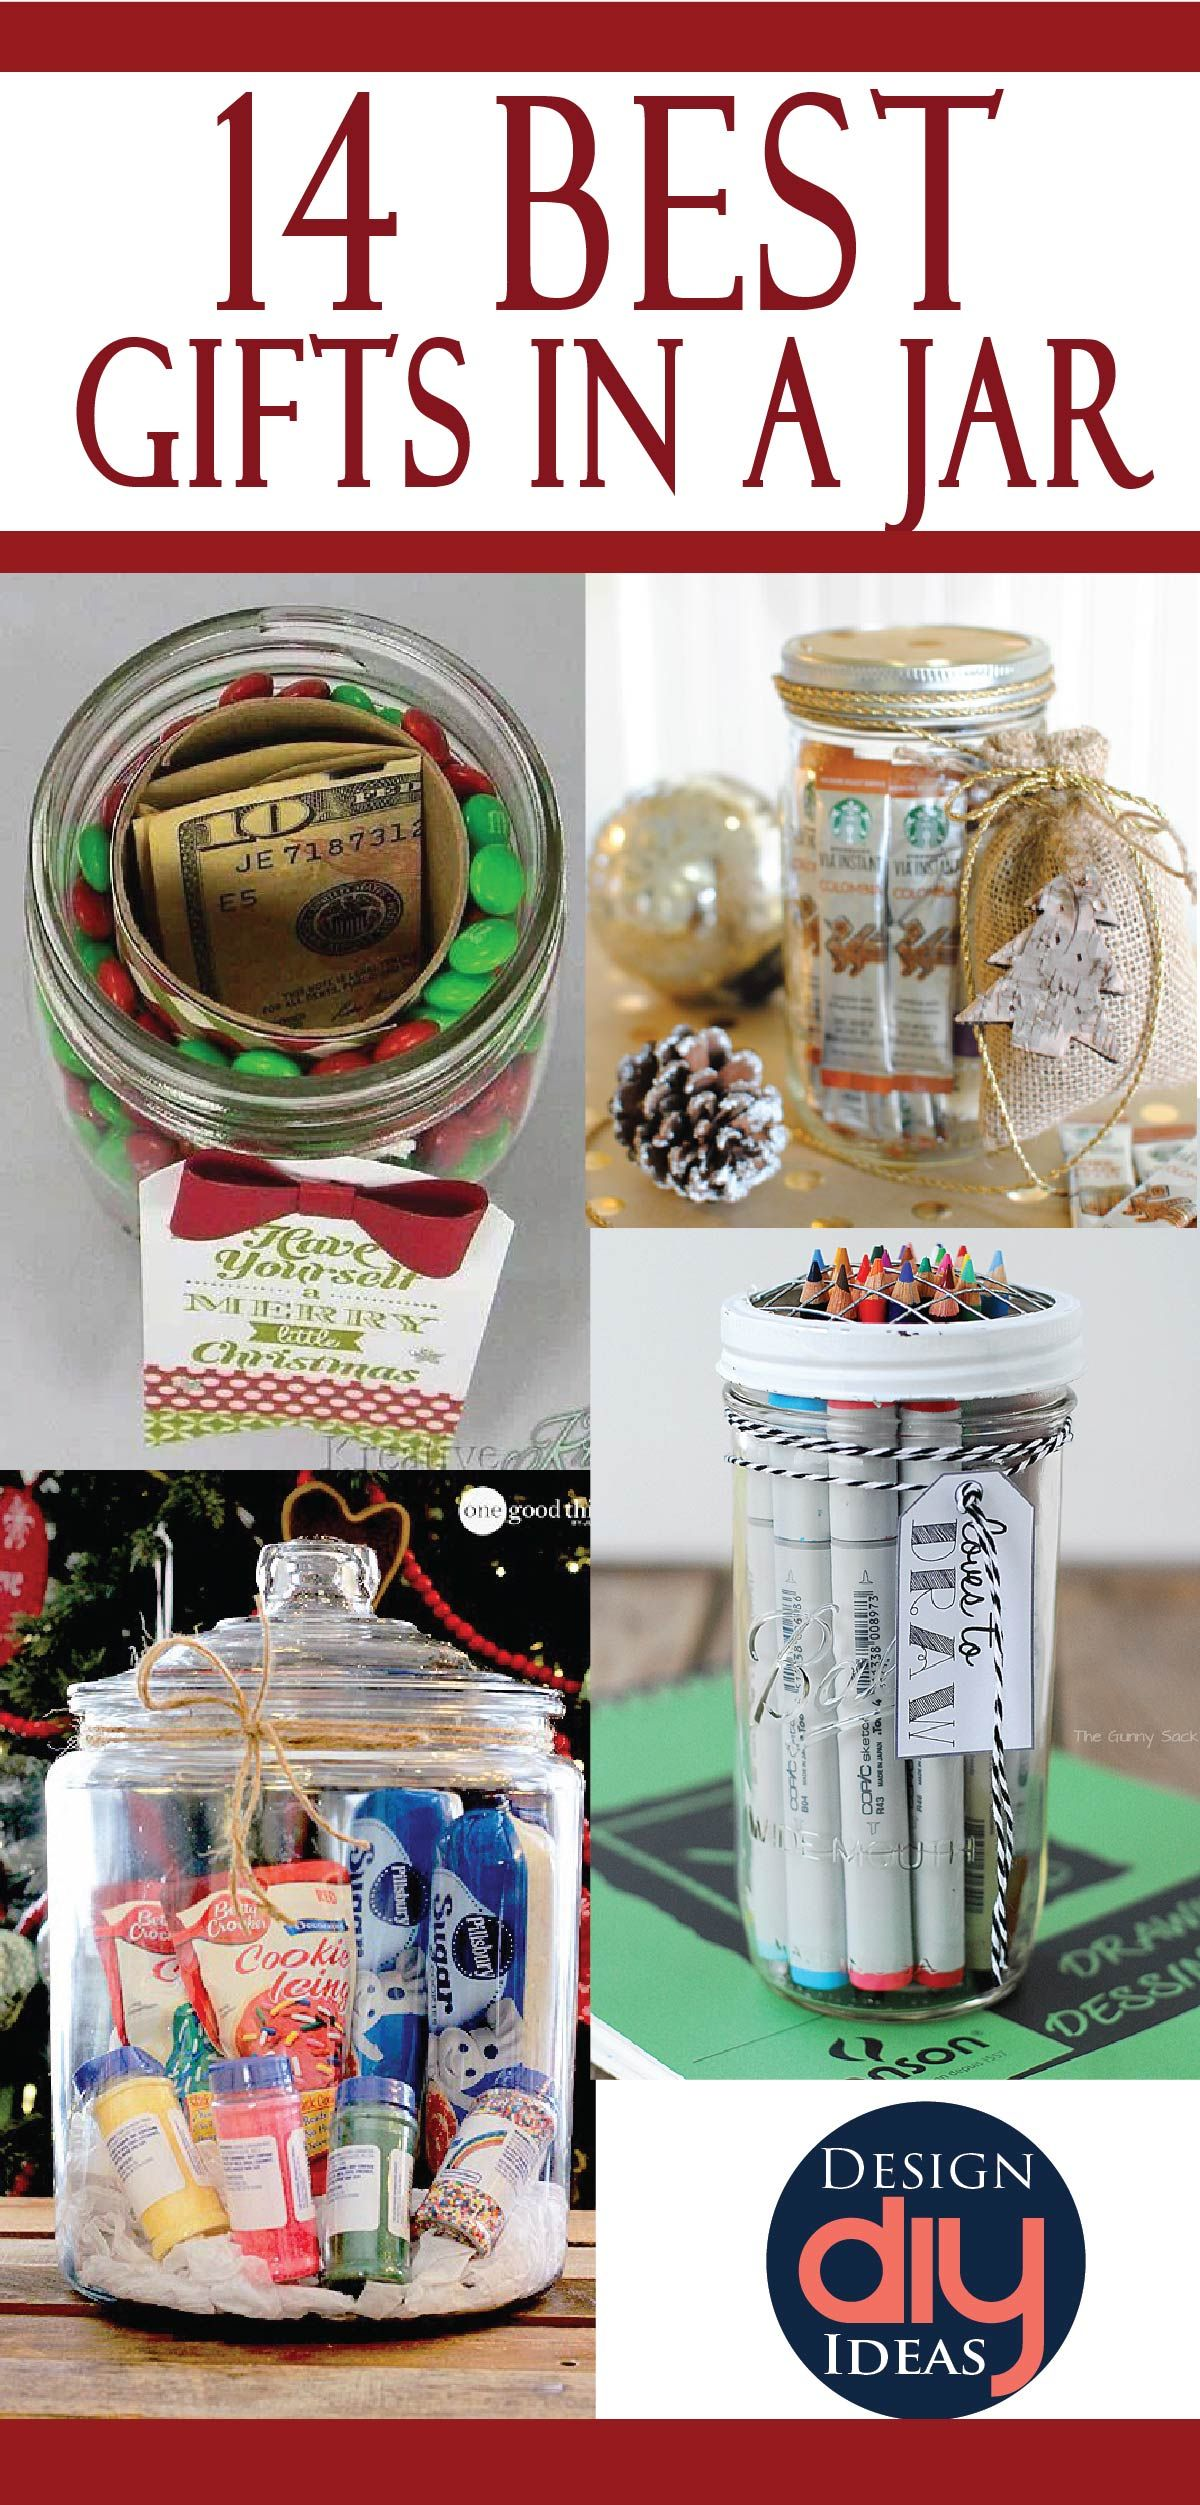 Check Out The Best Jar Gifts On Pinterest On One Site Jar Gifts Pinterest Christmas Gifts Christmas Jar Gifts